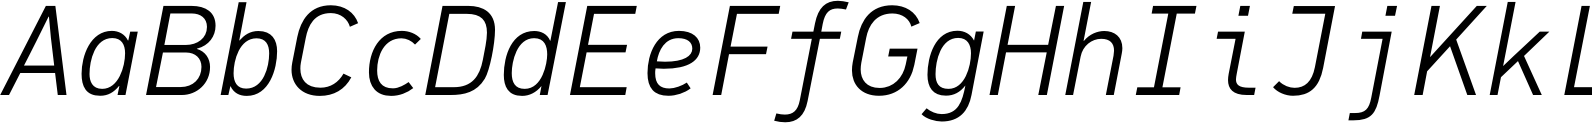 PFDinMono LightItalic